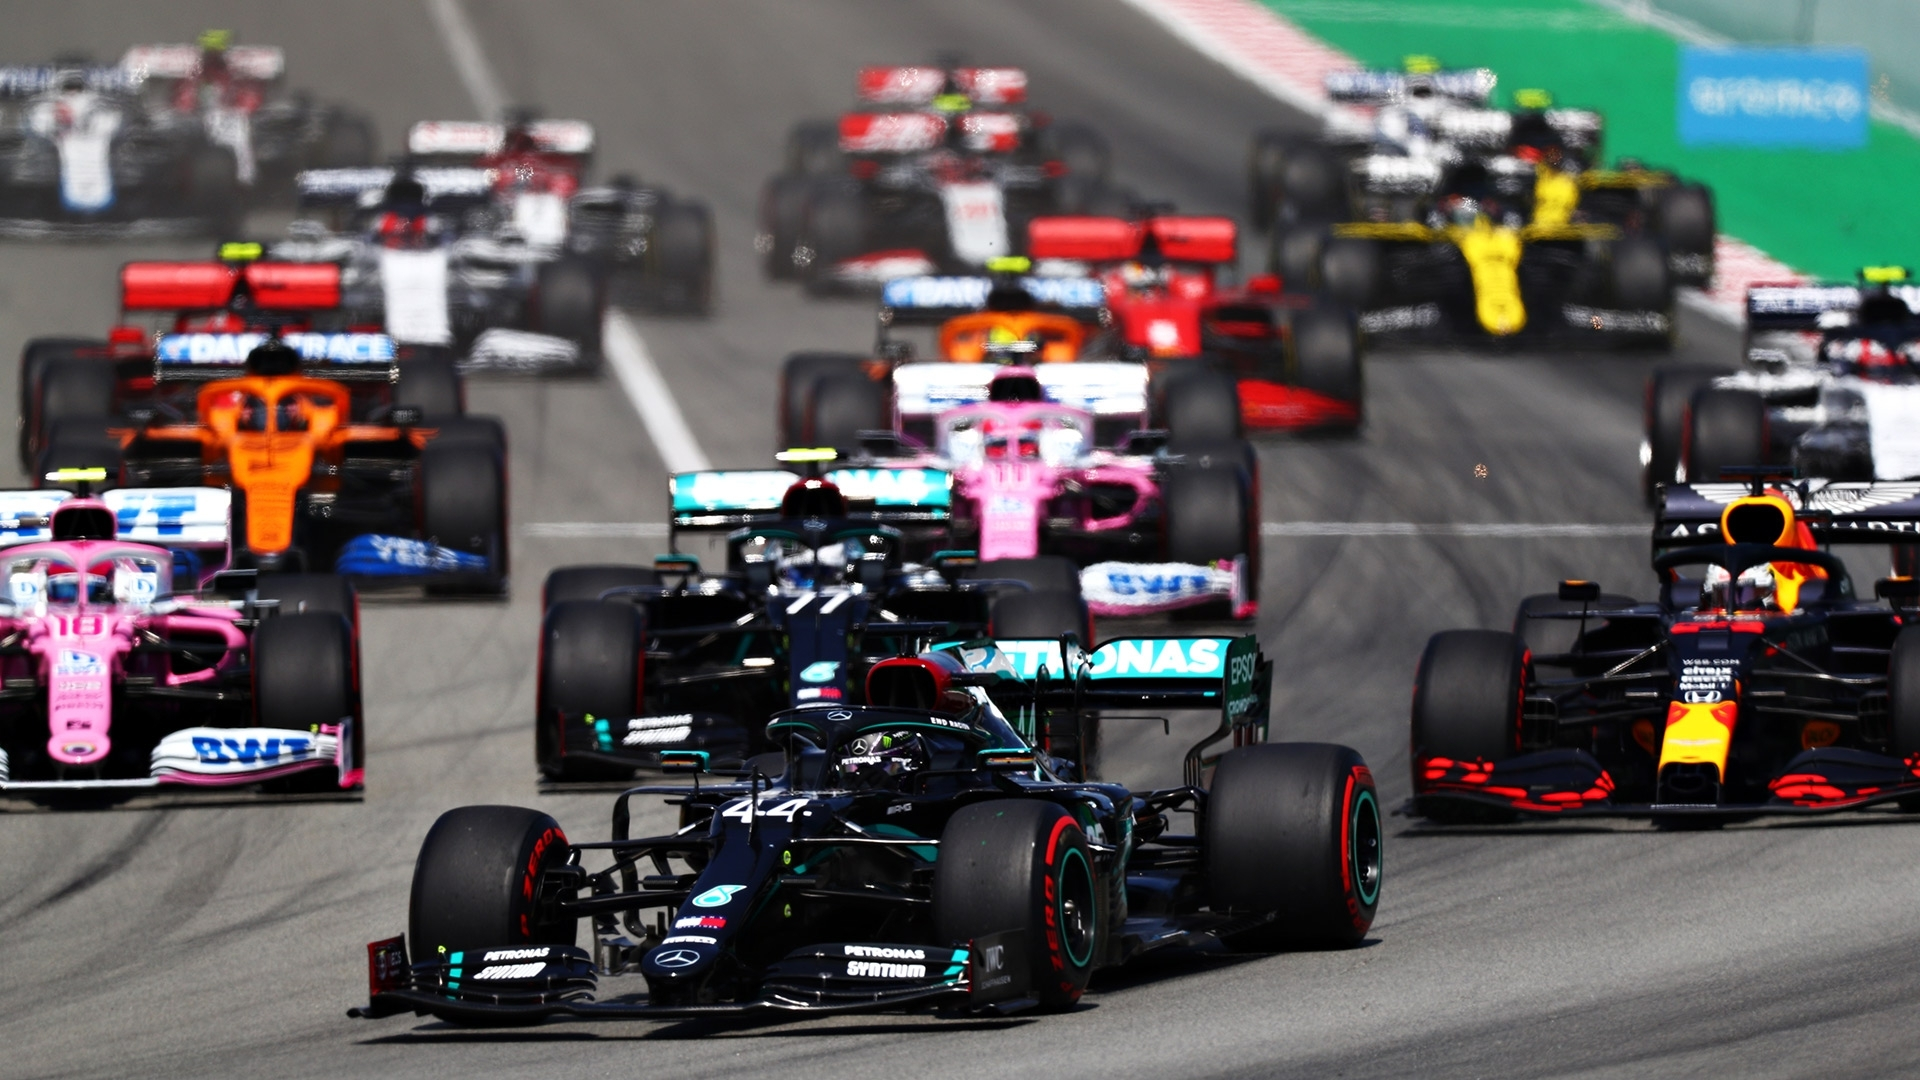 F1 Schedule 2021: Formula 1 Announces Provisional 23-Race